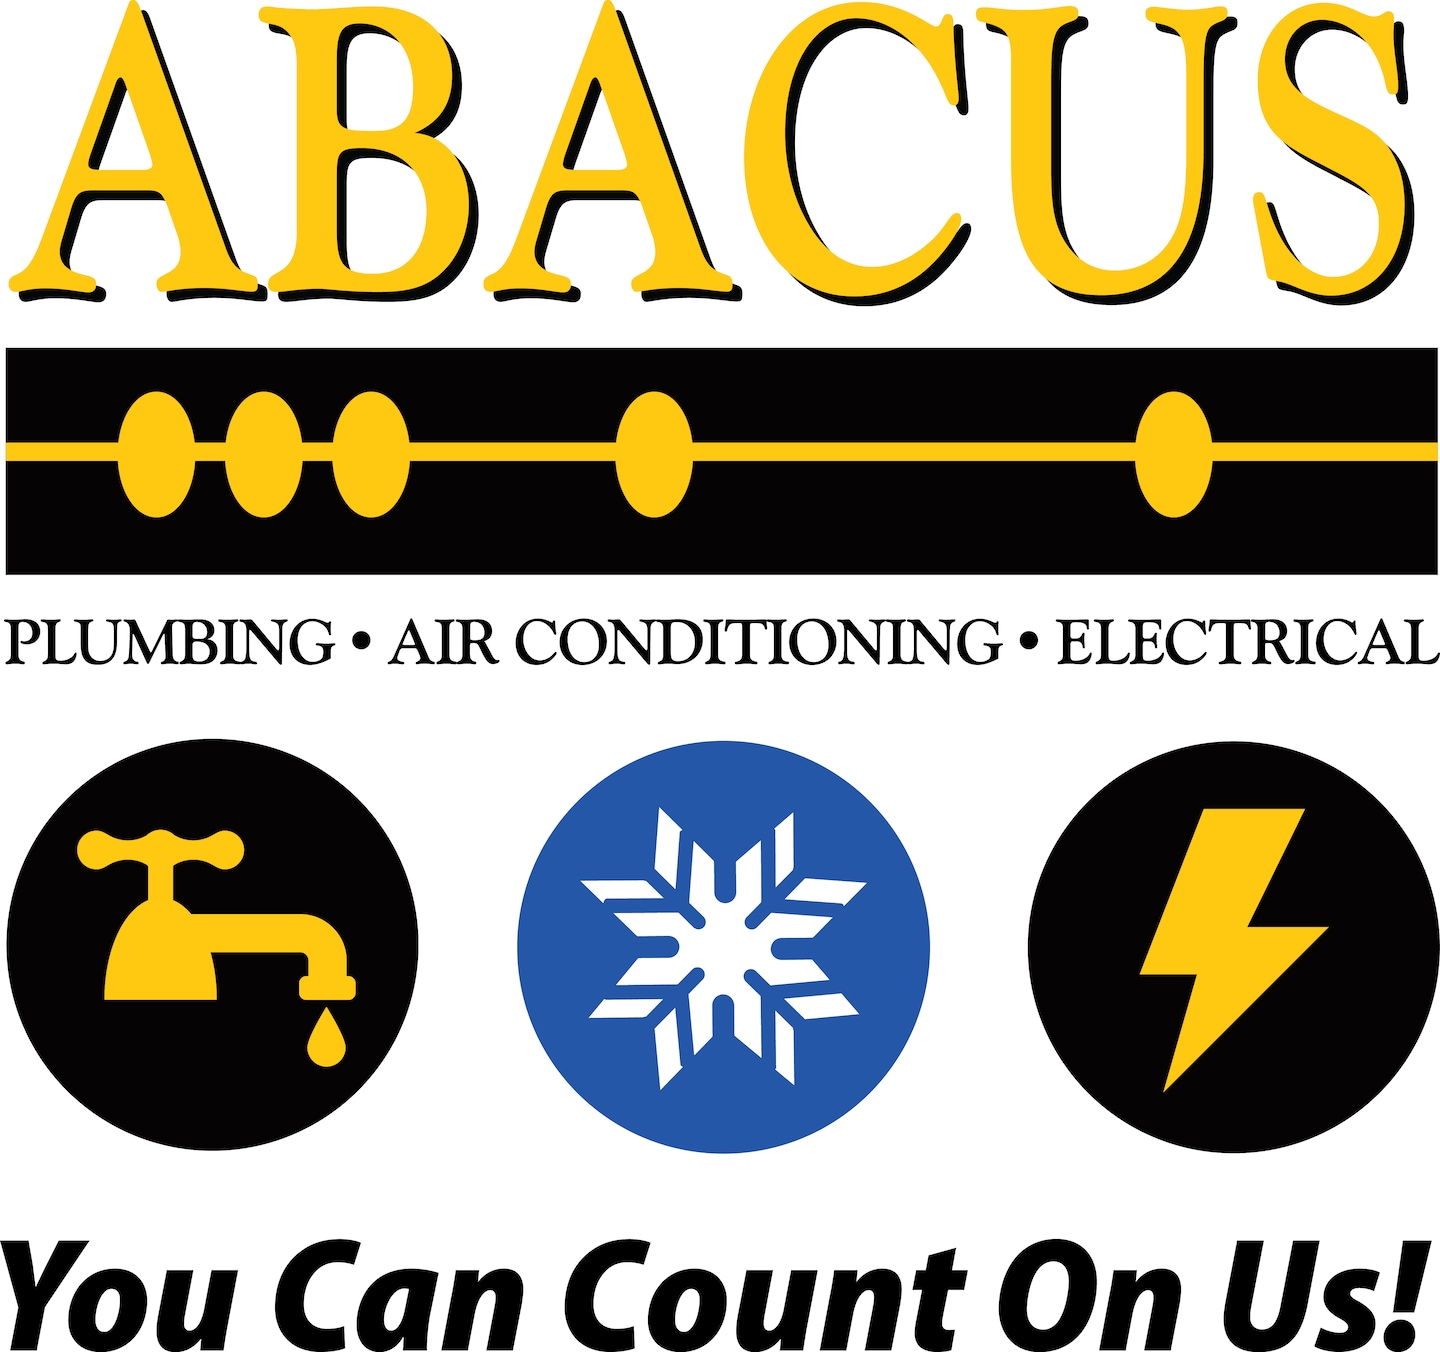 Abacus Plumbing Air Conditioning & Electrical